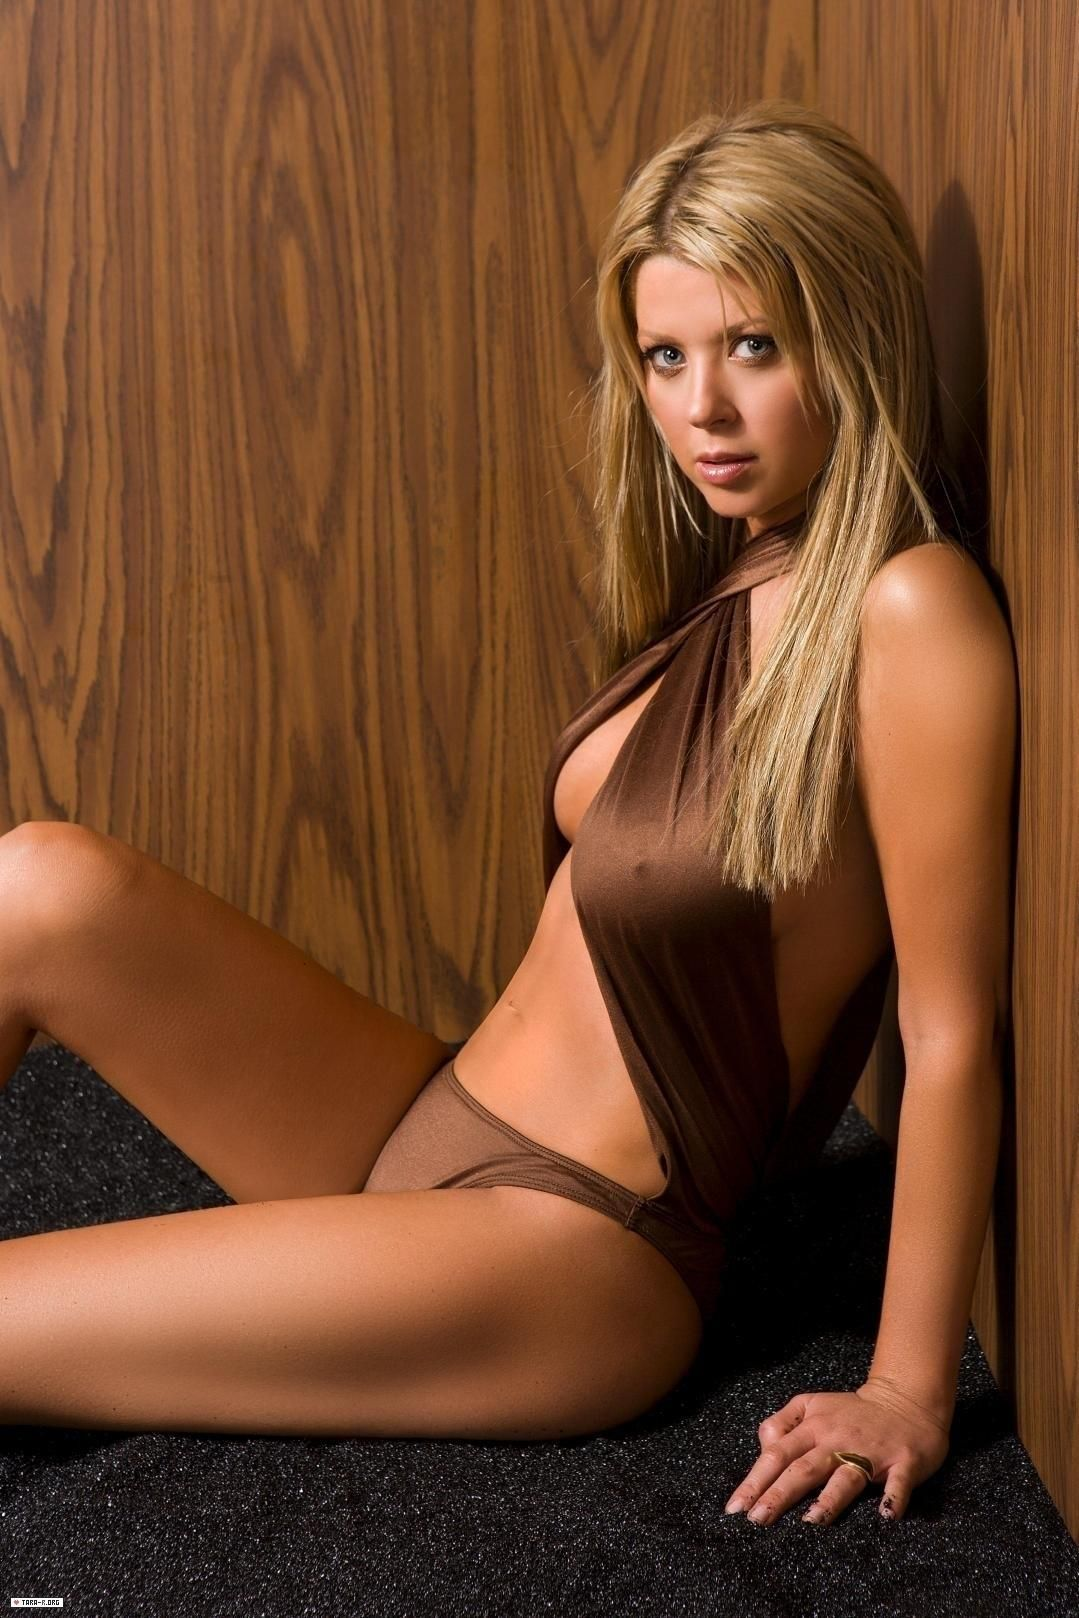 Sorry, Tara reid fakes naked right!